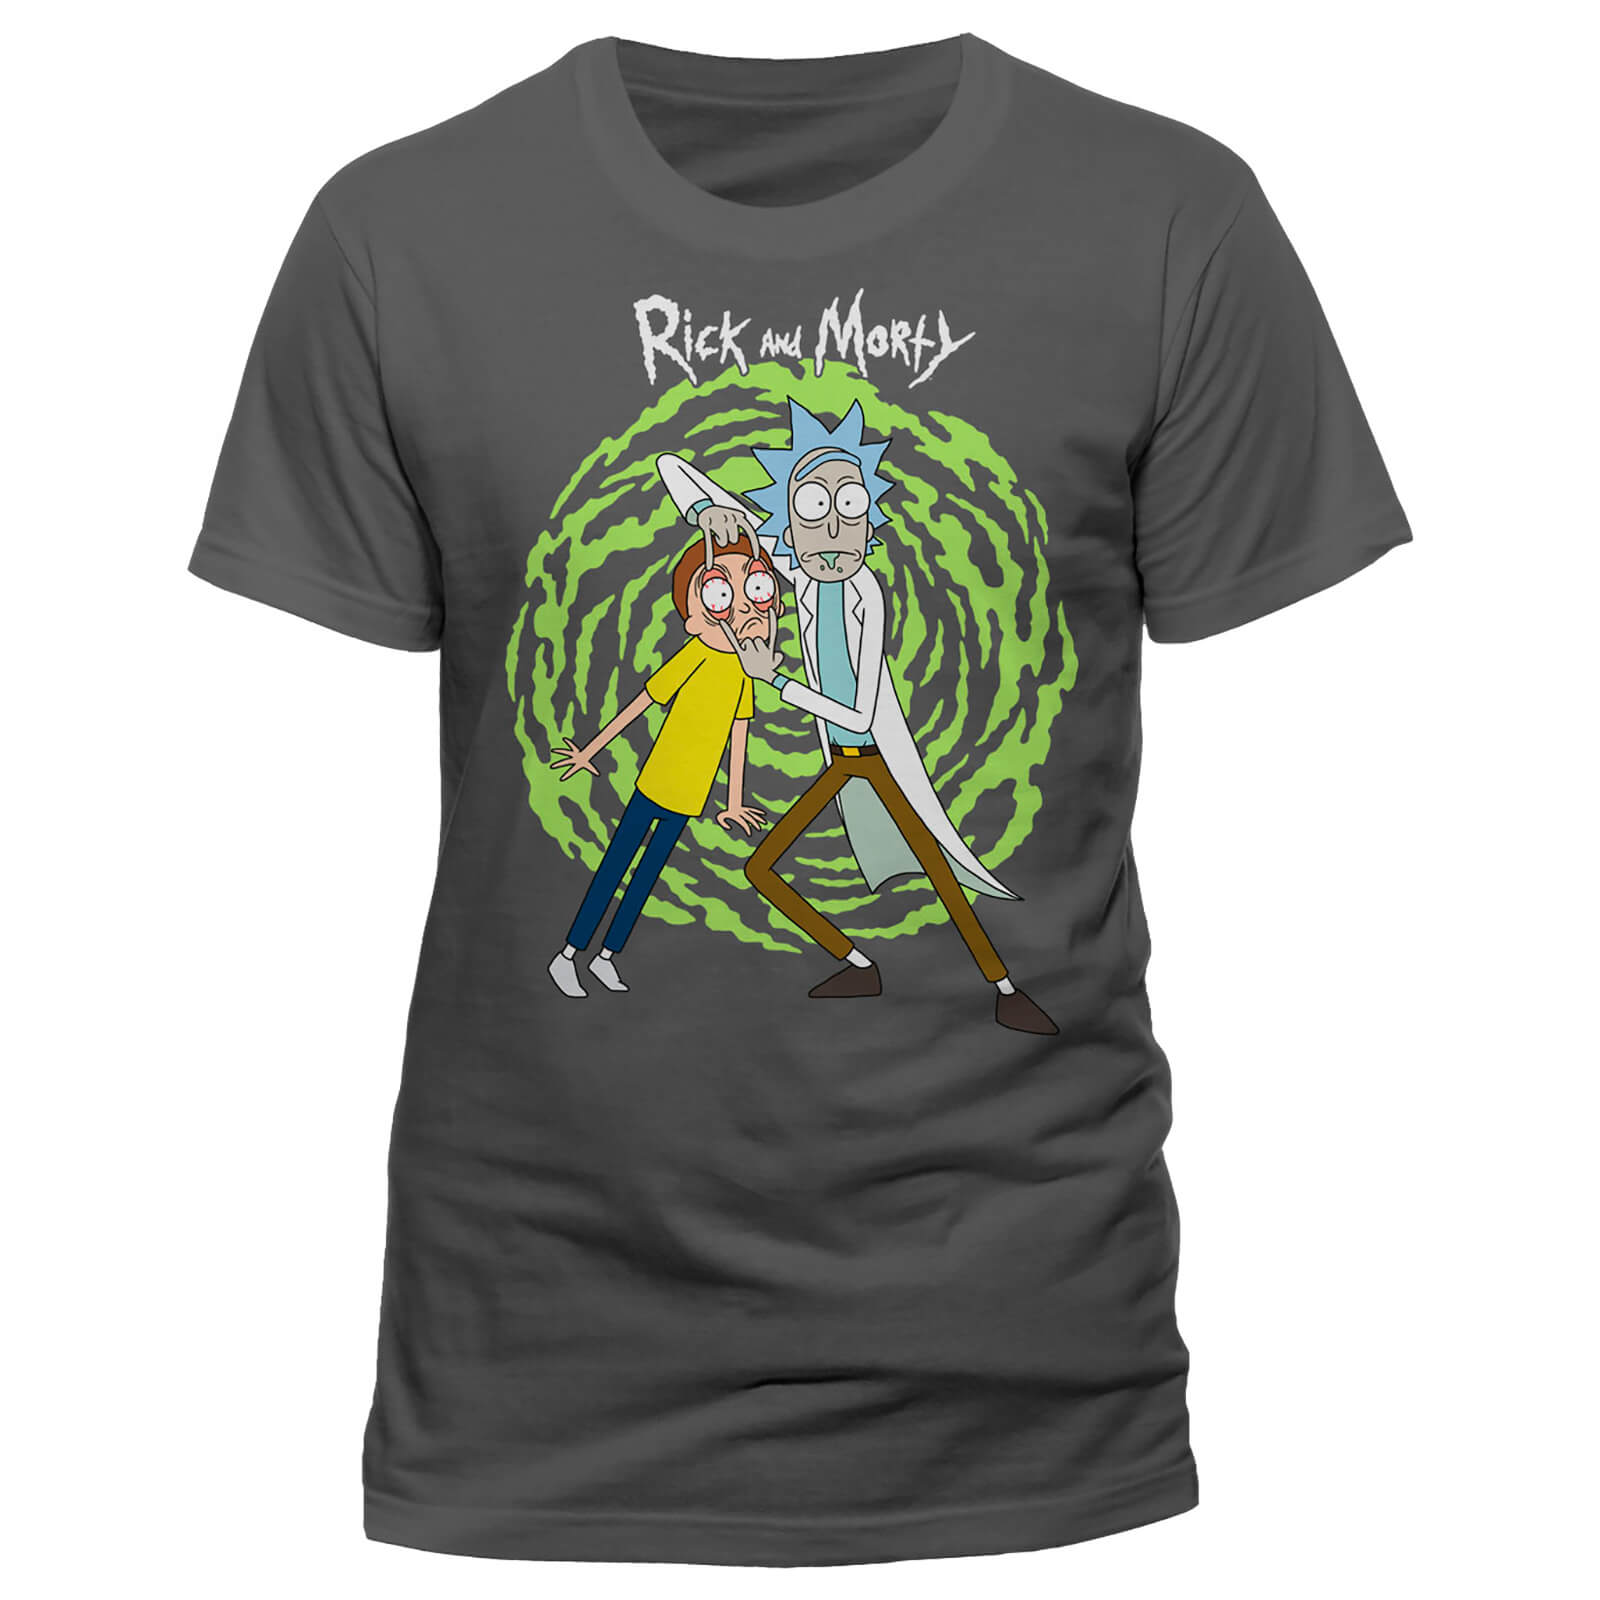 Rick and Morty Men